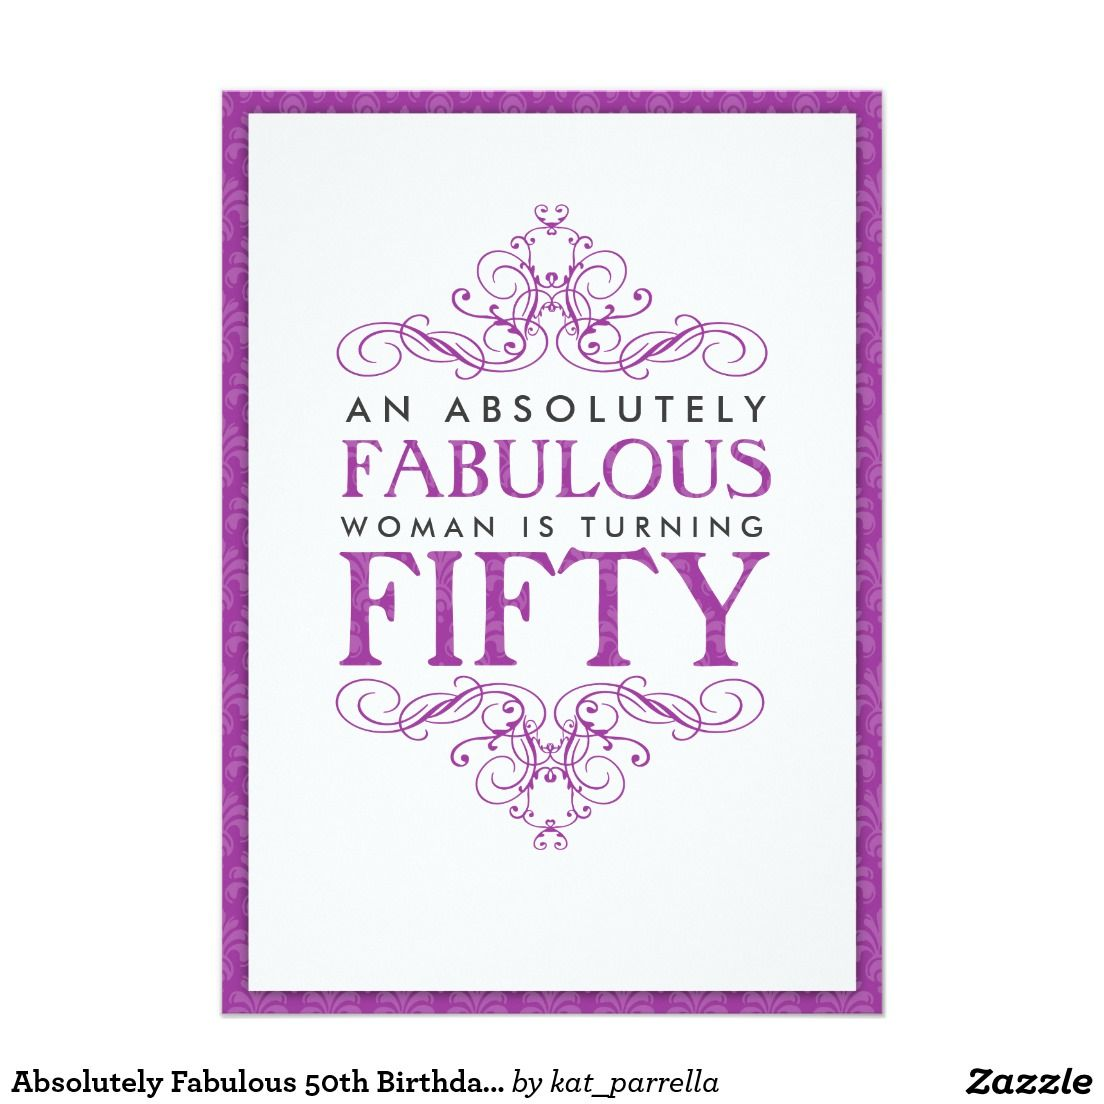 Absolutely Fabulous 50th Birthday Party Invitation | Pinterest ...